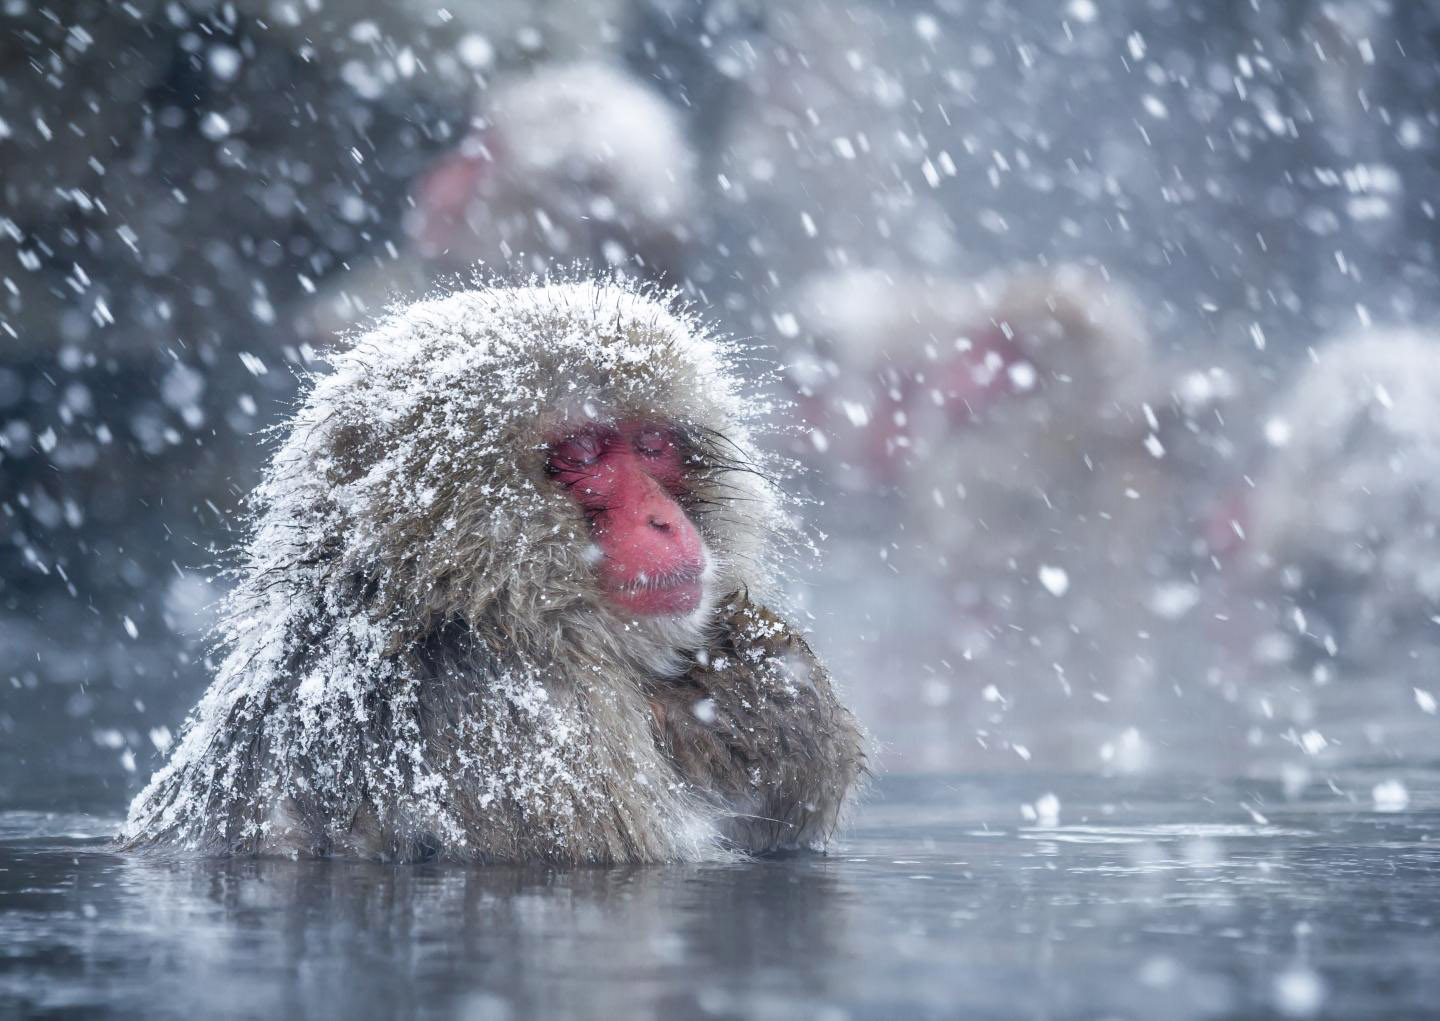 Sccientists discover why snow monkeys like hot baths